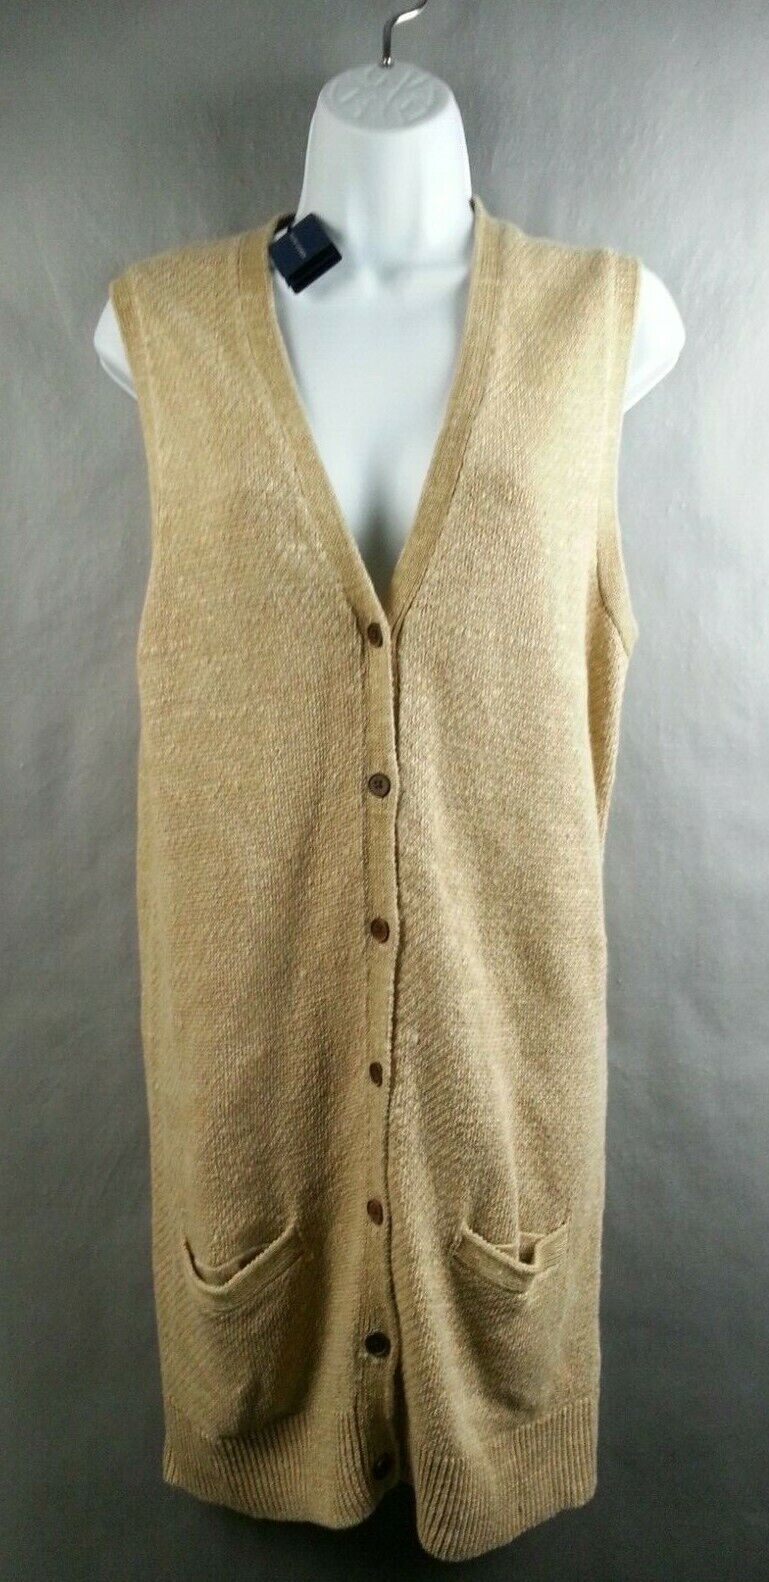 NWT Ralph Lauren Sleeveless Tan Italian Linen Sweater Vest  Size L Large